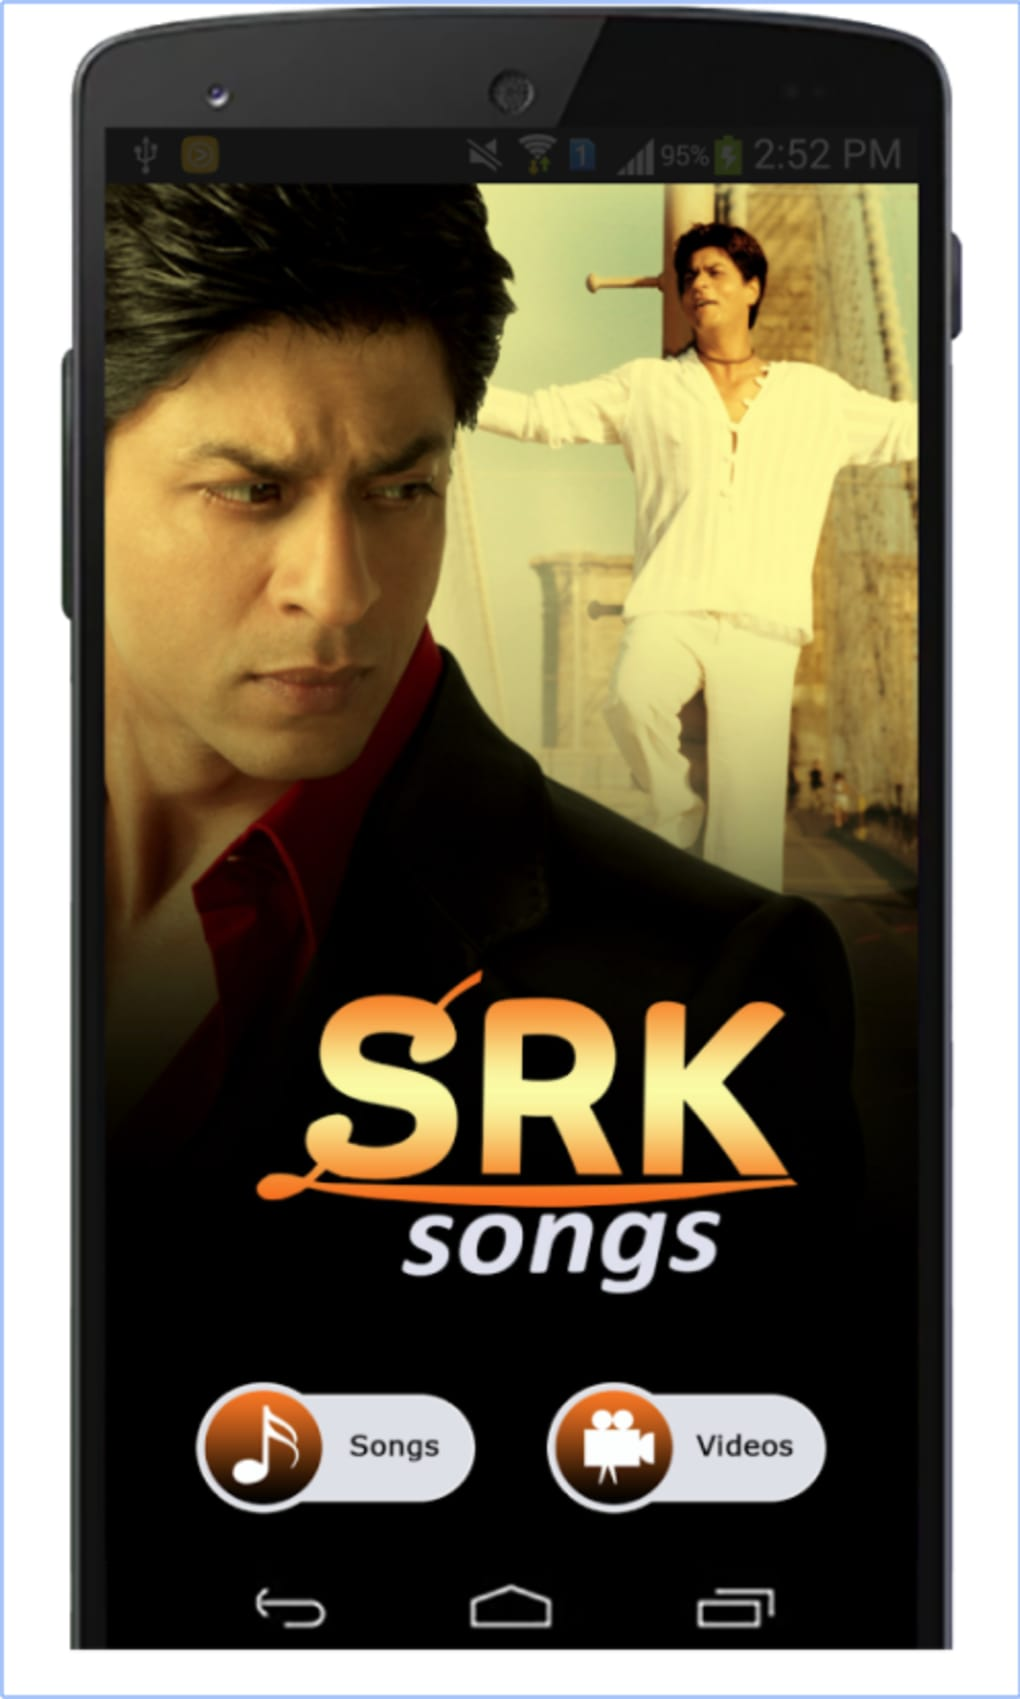 Download hindi movie songs latest | Free Download Songs PK